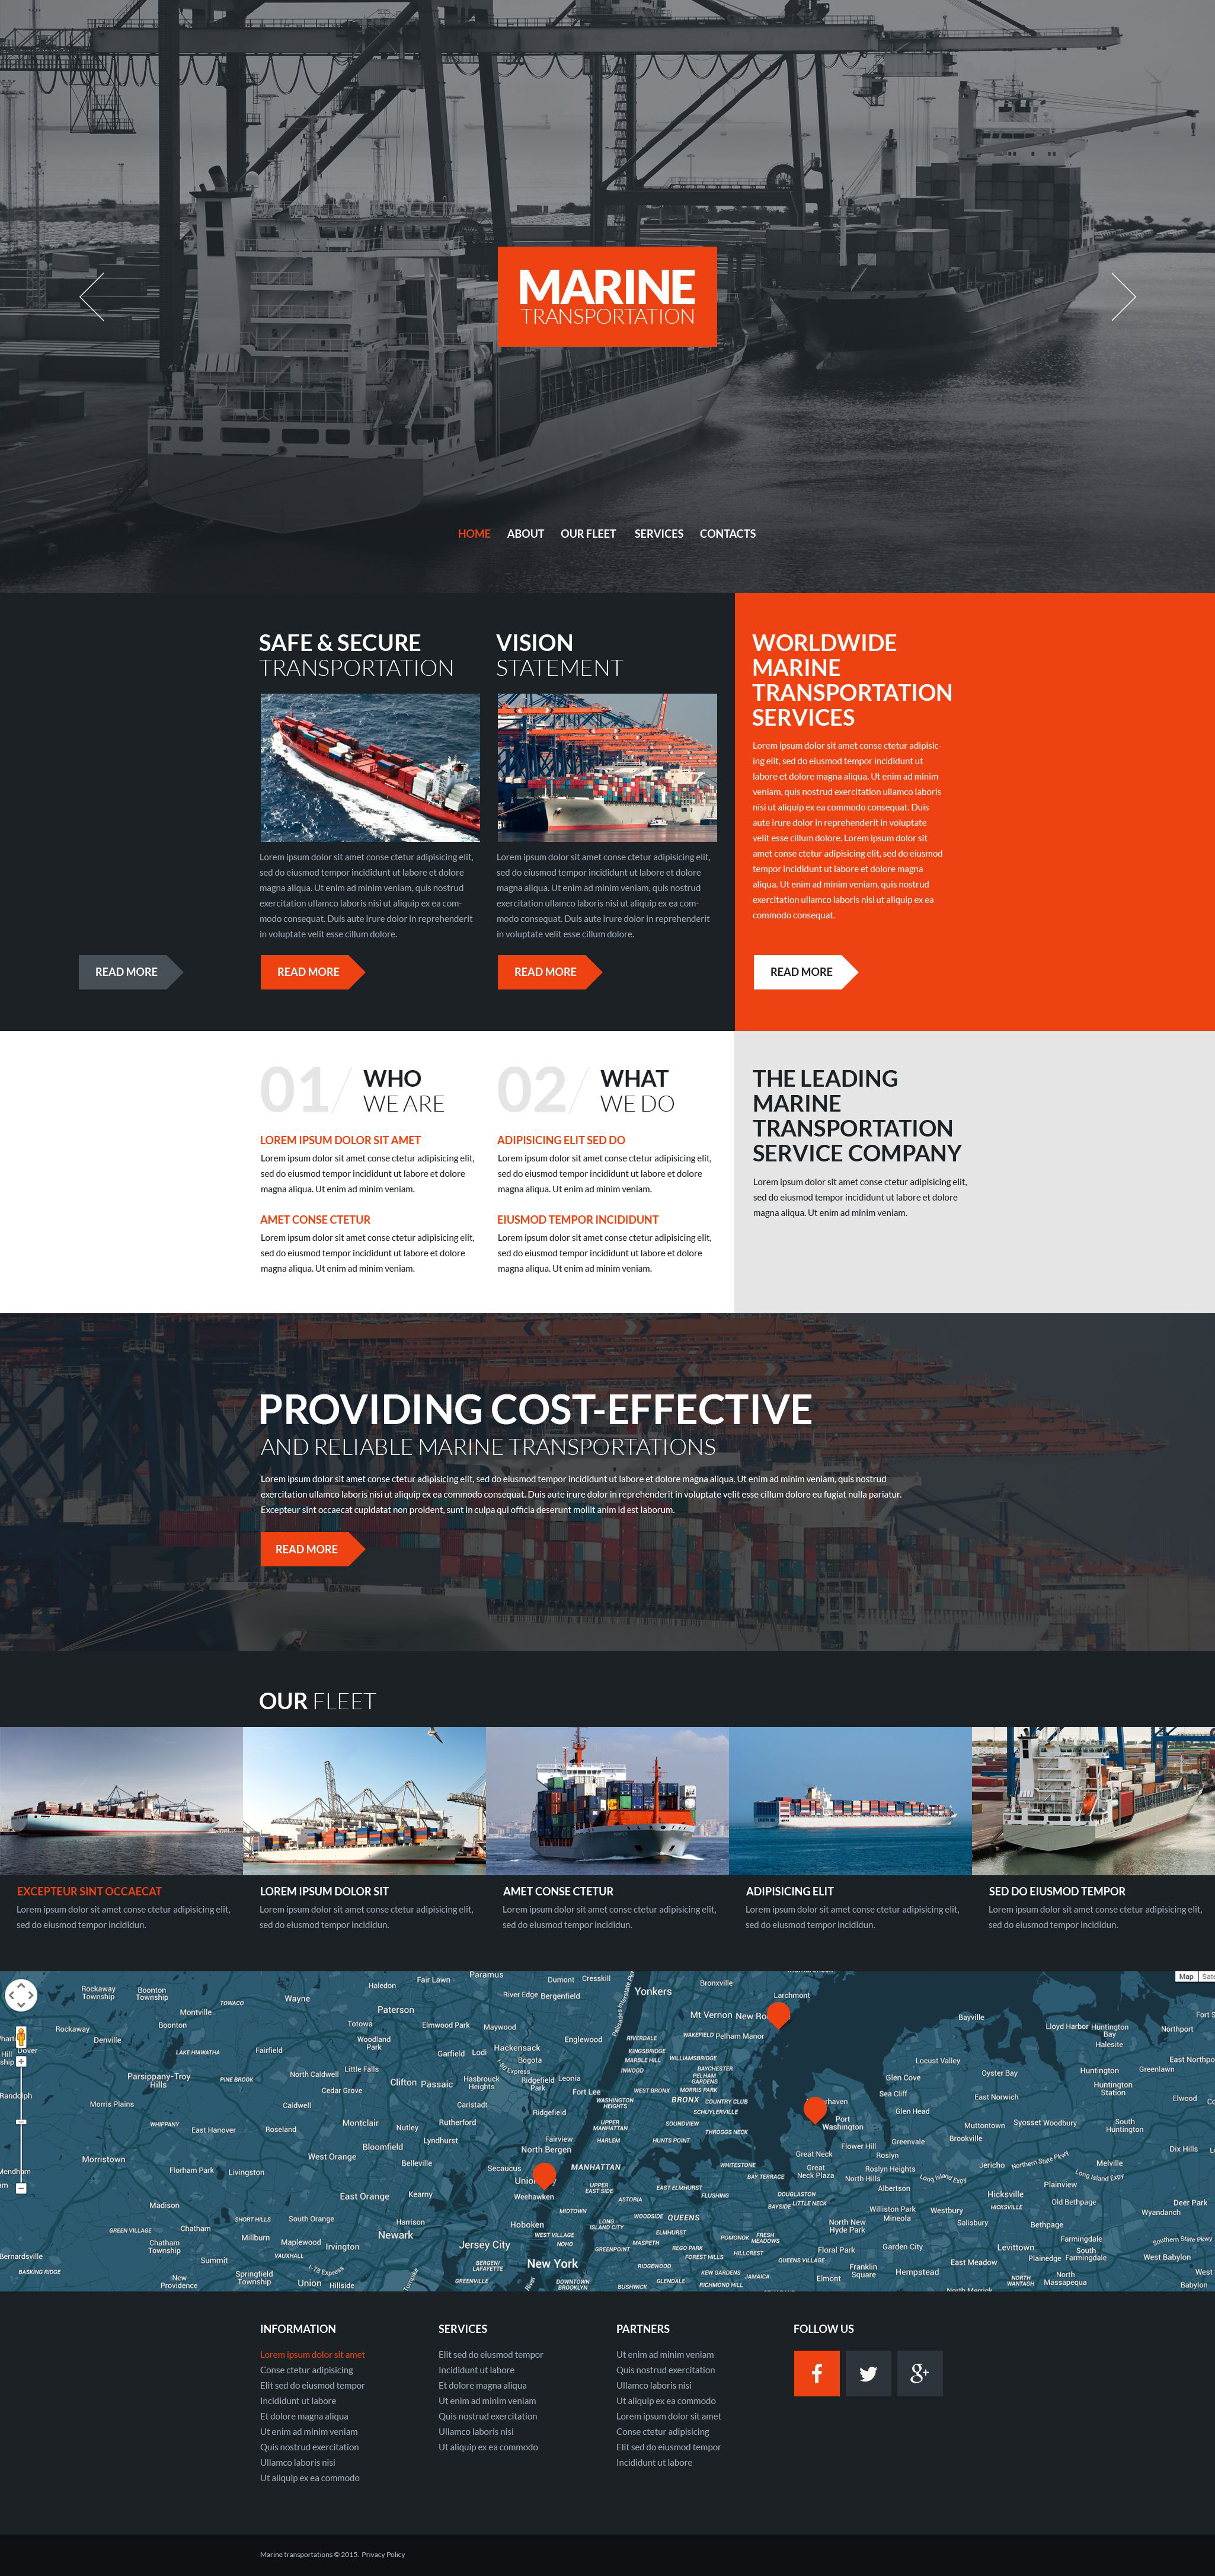 The Marine Transportations Bootstrap Design 53277, one of the best website templates of its kind (transportation, most popular), also known as marine transportations website template, sea website template, port website template, ships website template, shipping website template, services website template, prices website template, transportation website template, seaman website template, sailor and related with marine transportations, sea, port, ships, shipping, services, prices, transportation, seaman, sailor, etc.